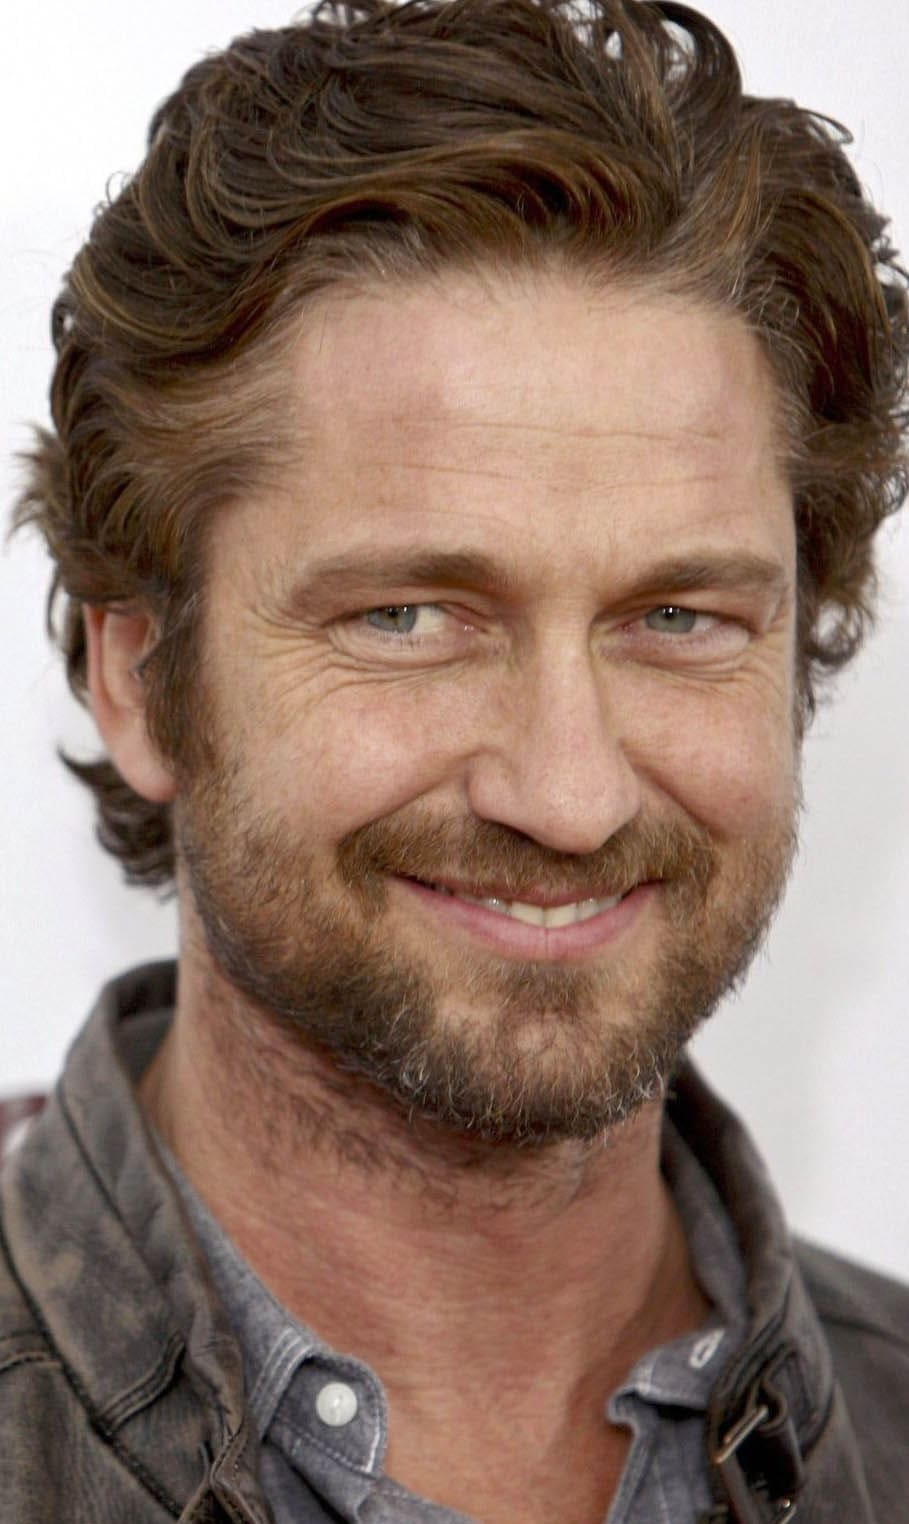 gerard butler Haircut 2018